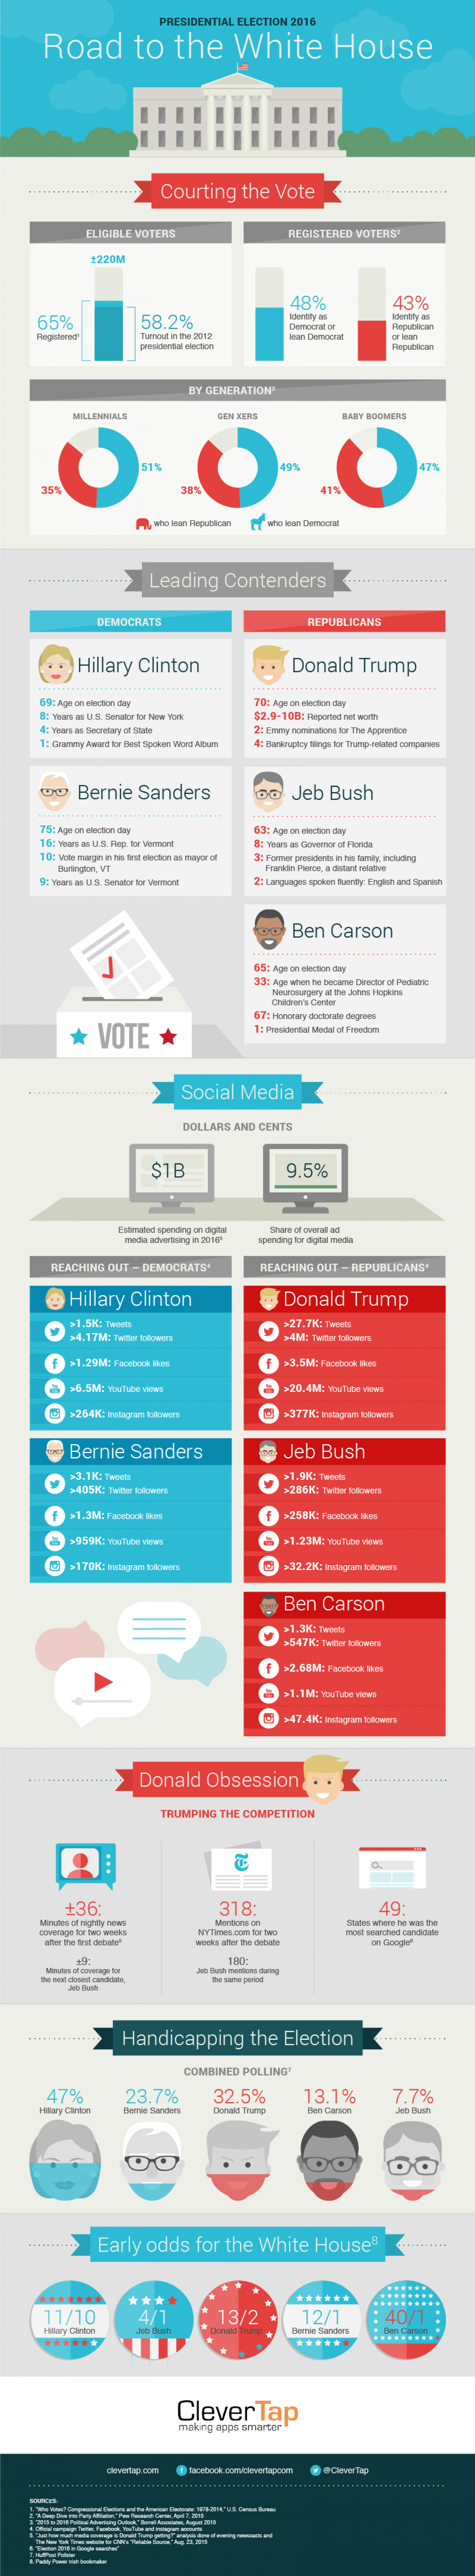 Presidential Campaign 2016 Road to the White House Infographic